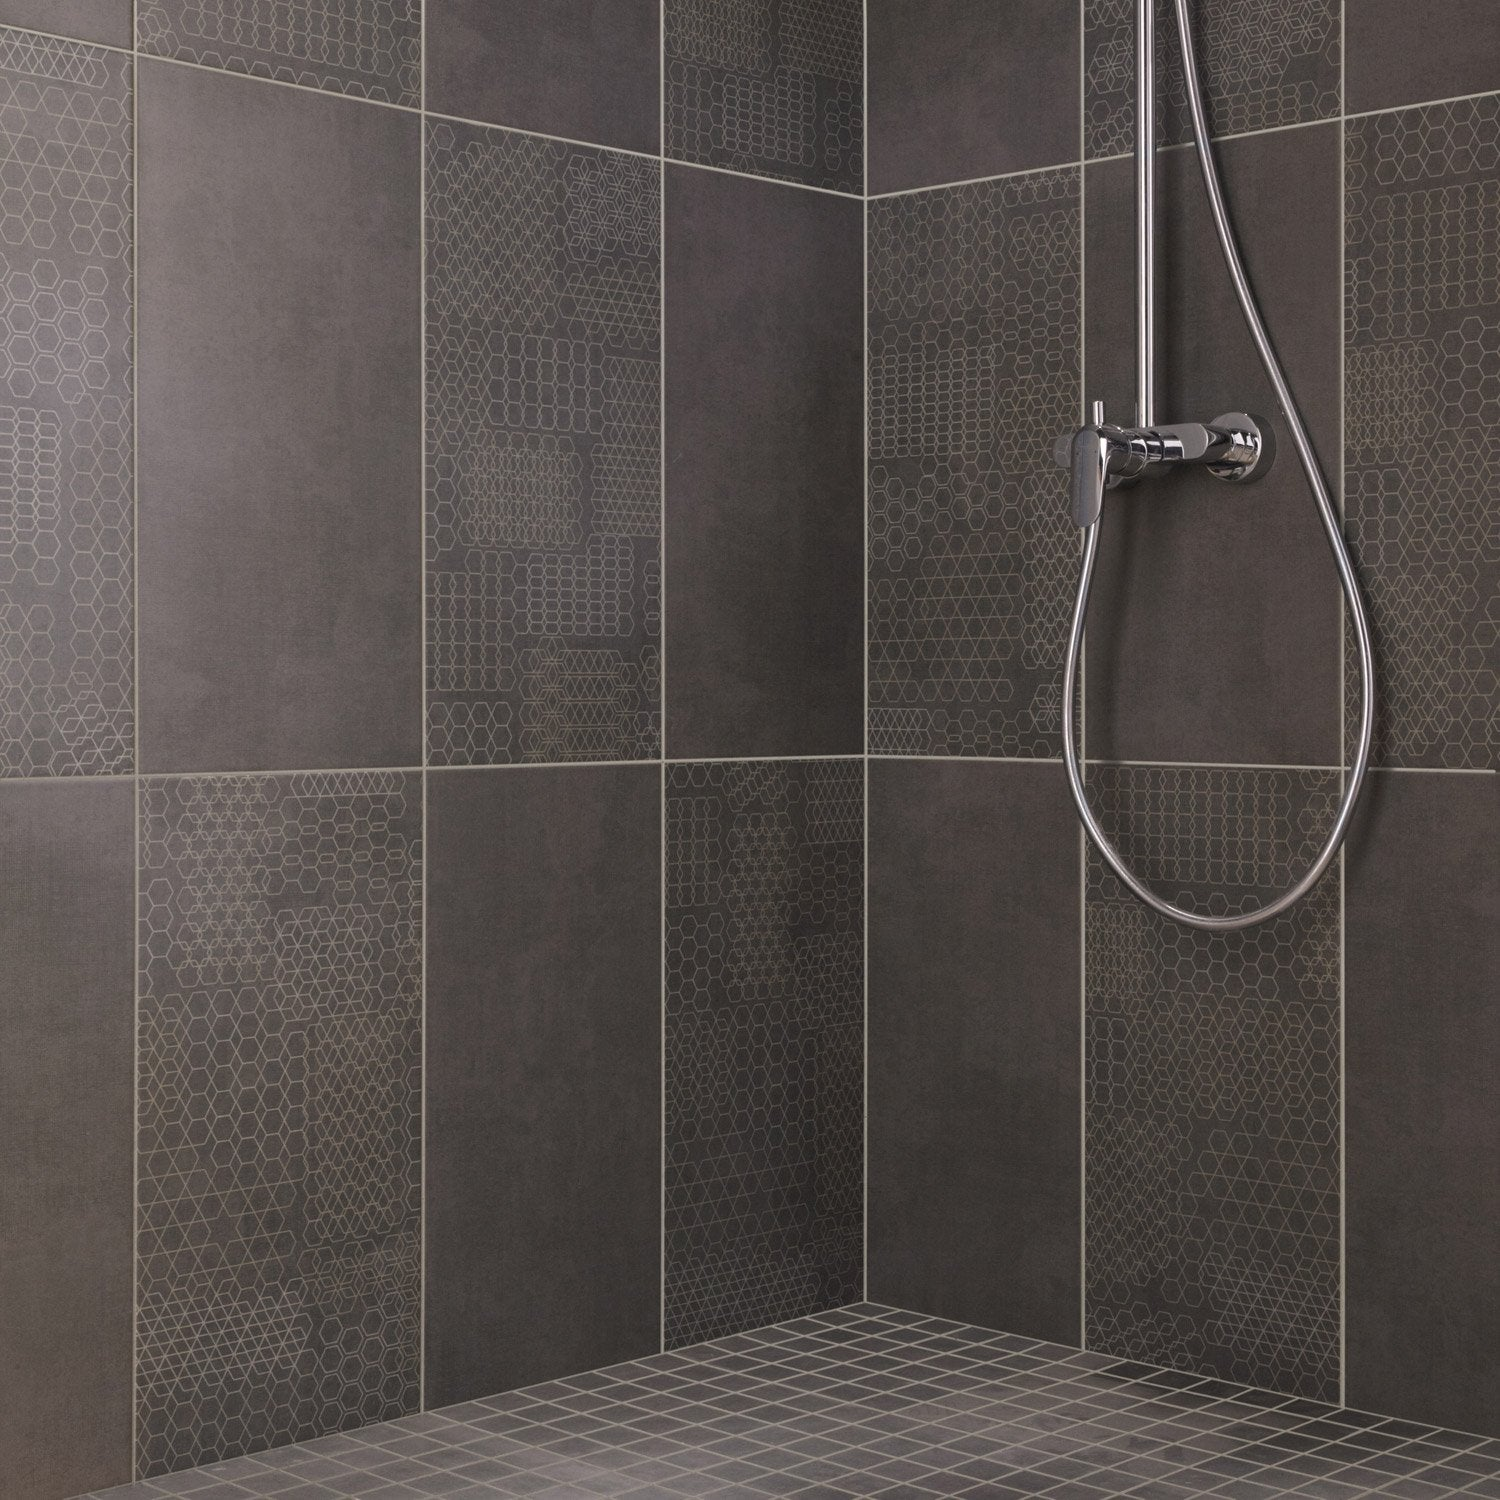 Fa ence mur anthracite tweed x cm leroy merlin for Faience mur salle de bain